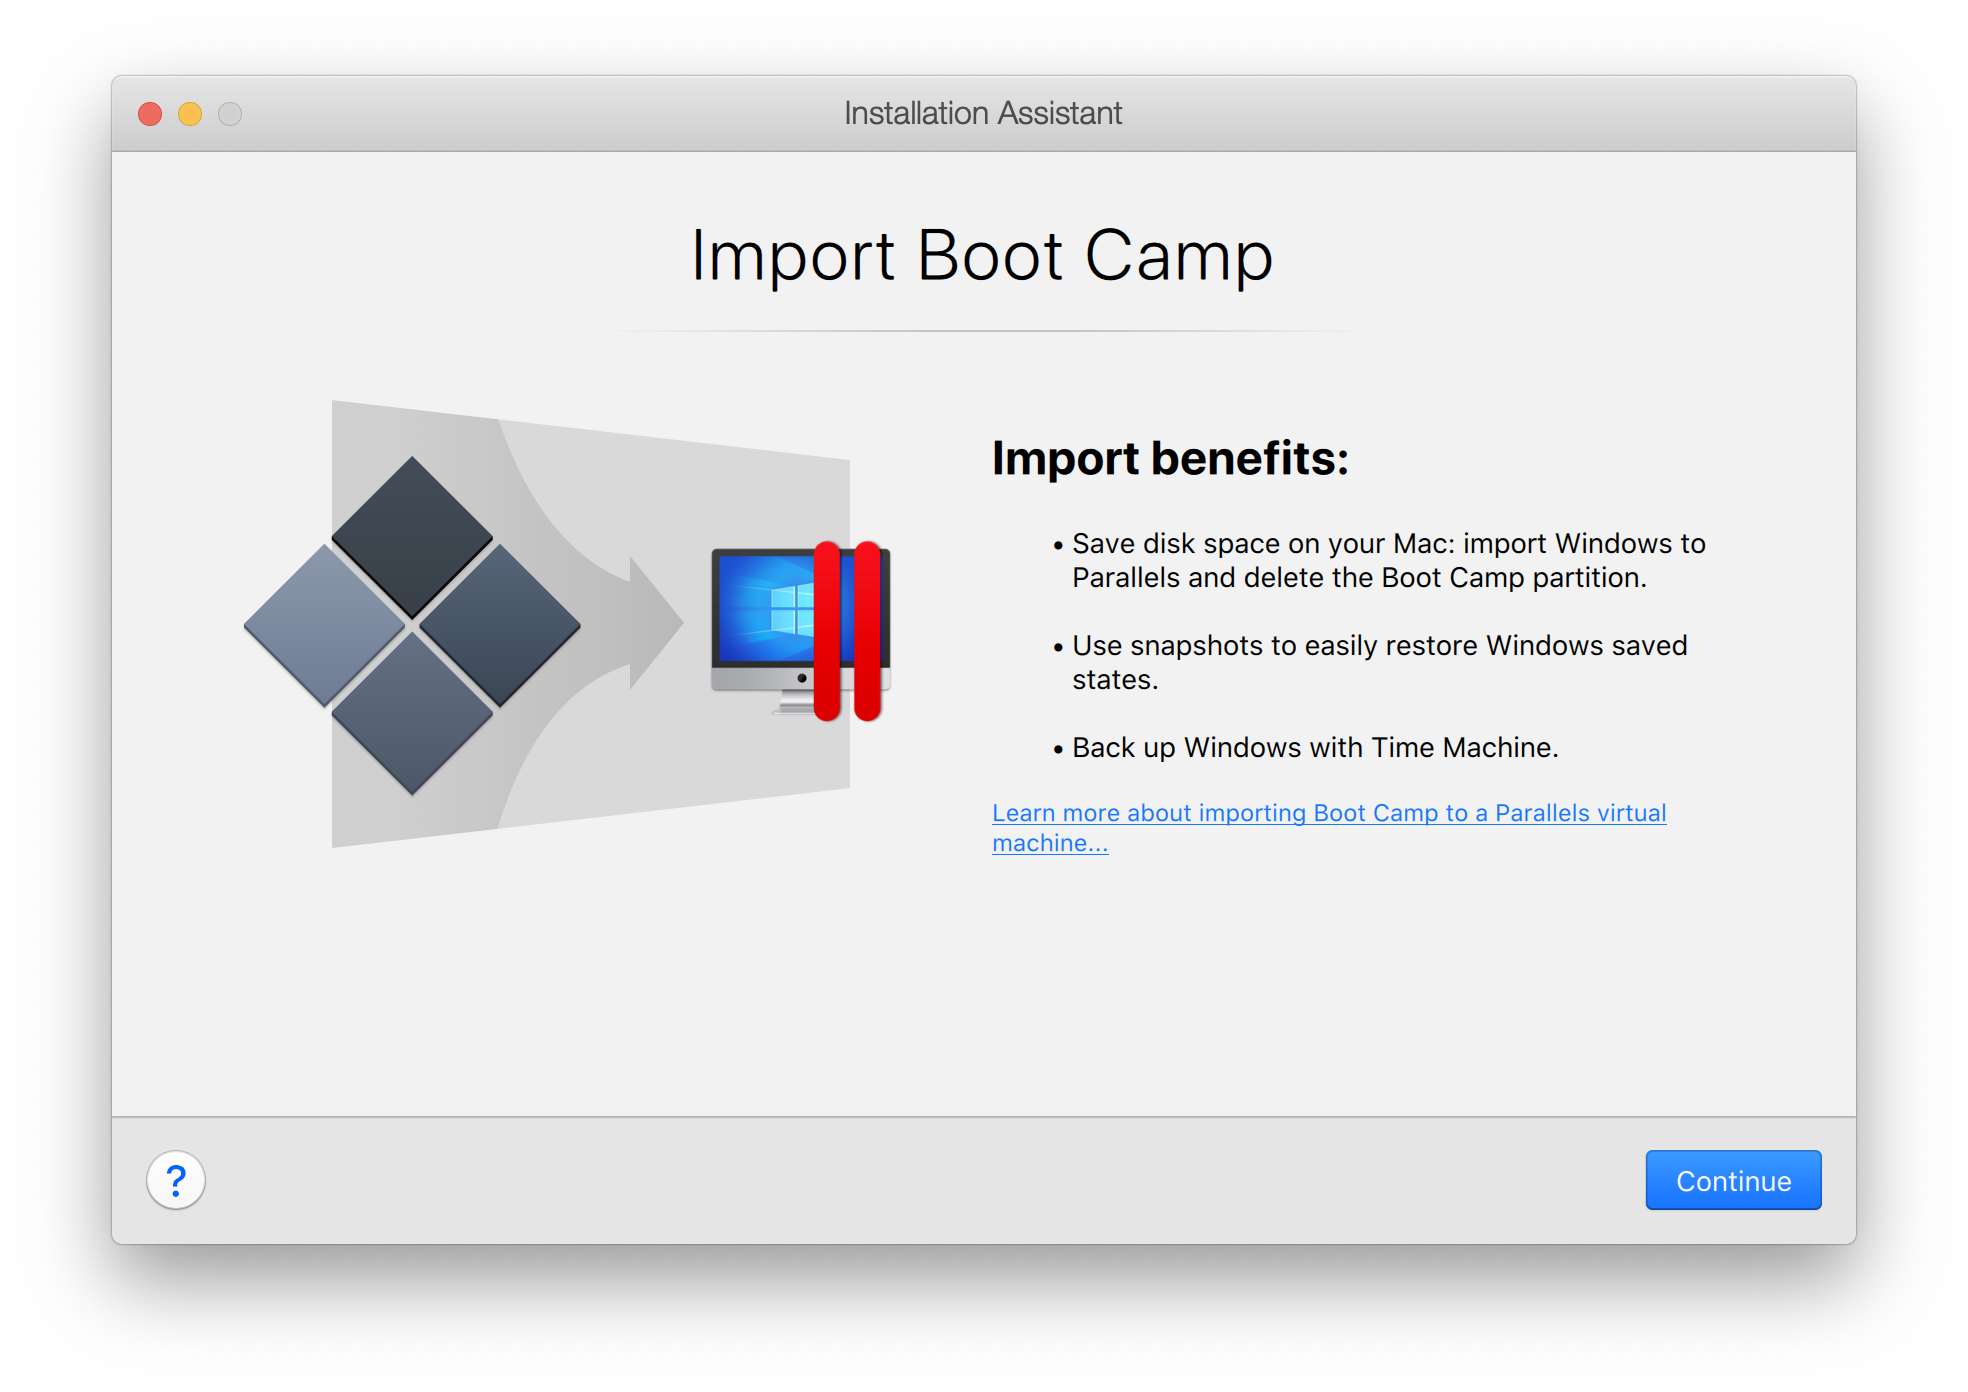 Import Boot Camp to another Mac or run it from an external